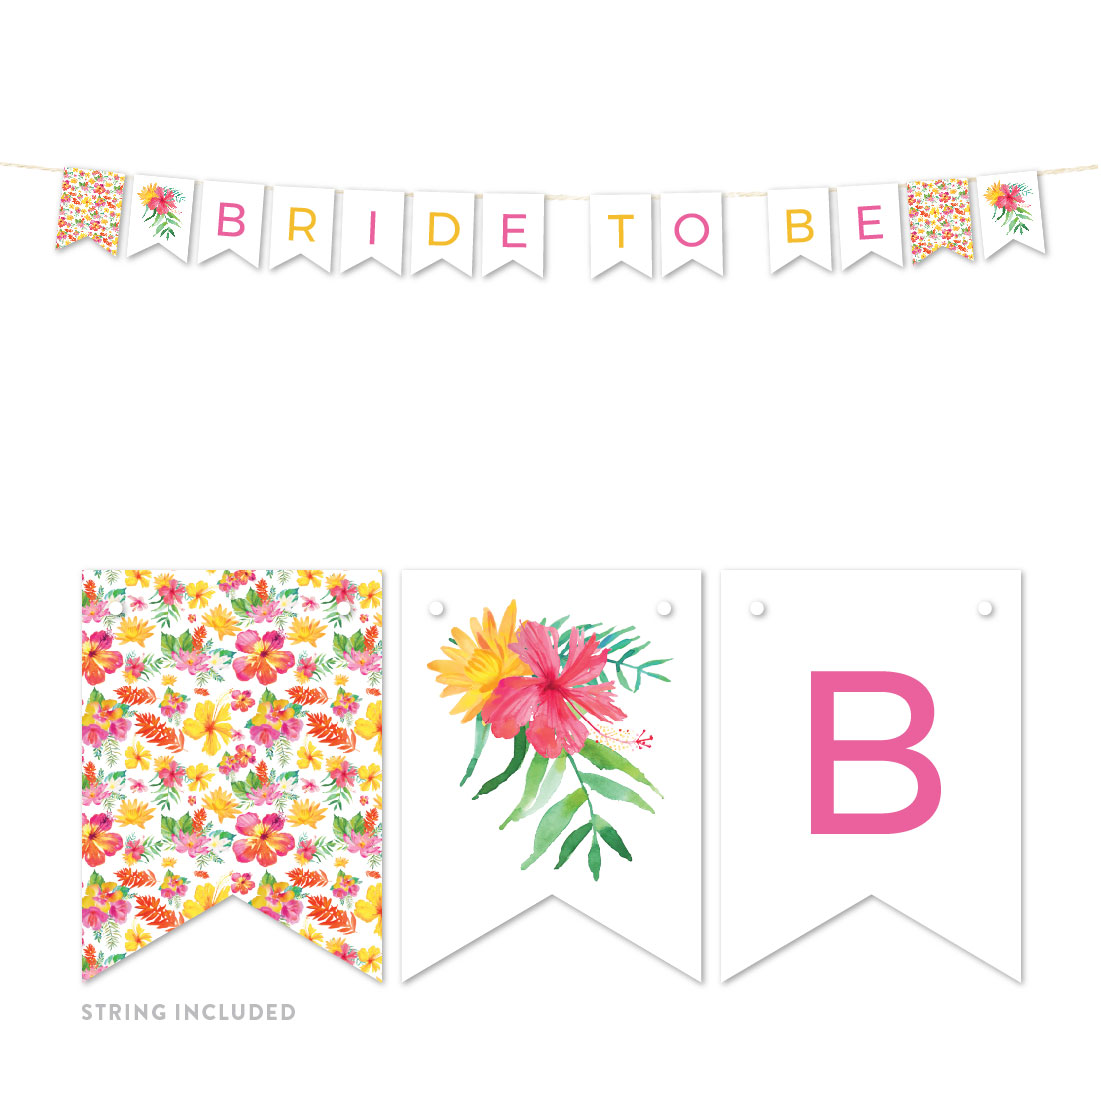 Tropical Floral Garden Party Wedding, Hanging Pennant Party Banner with String, Bride to Be